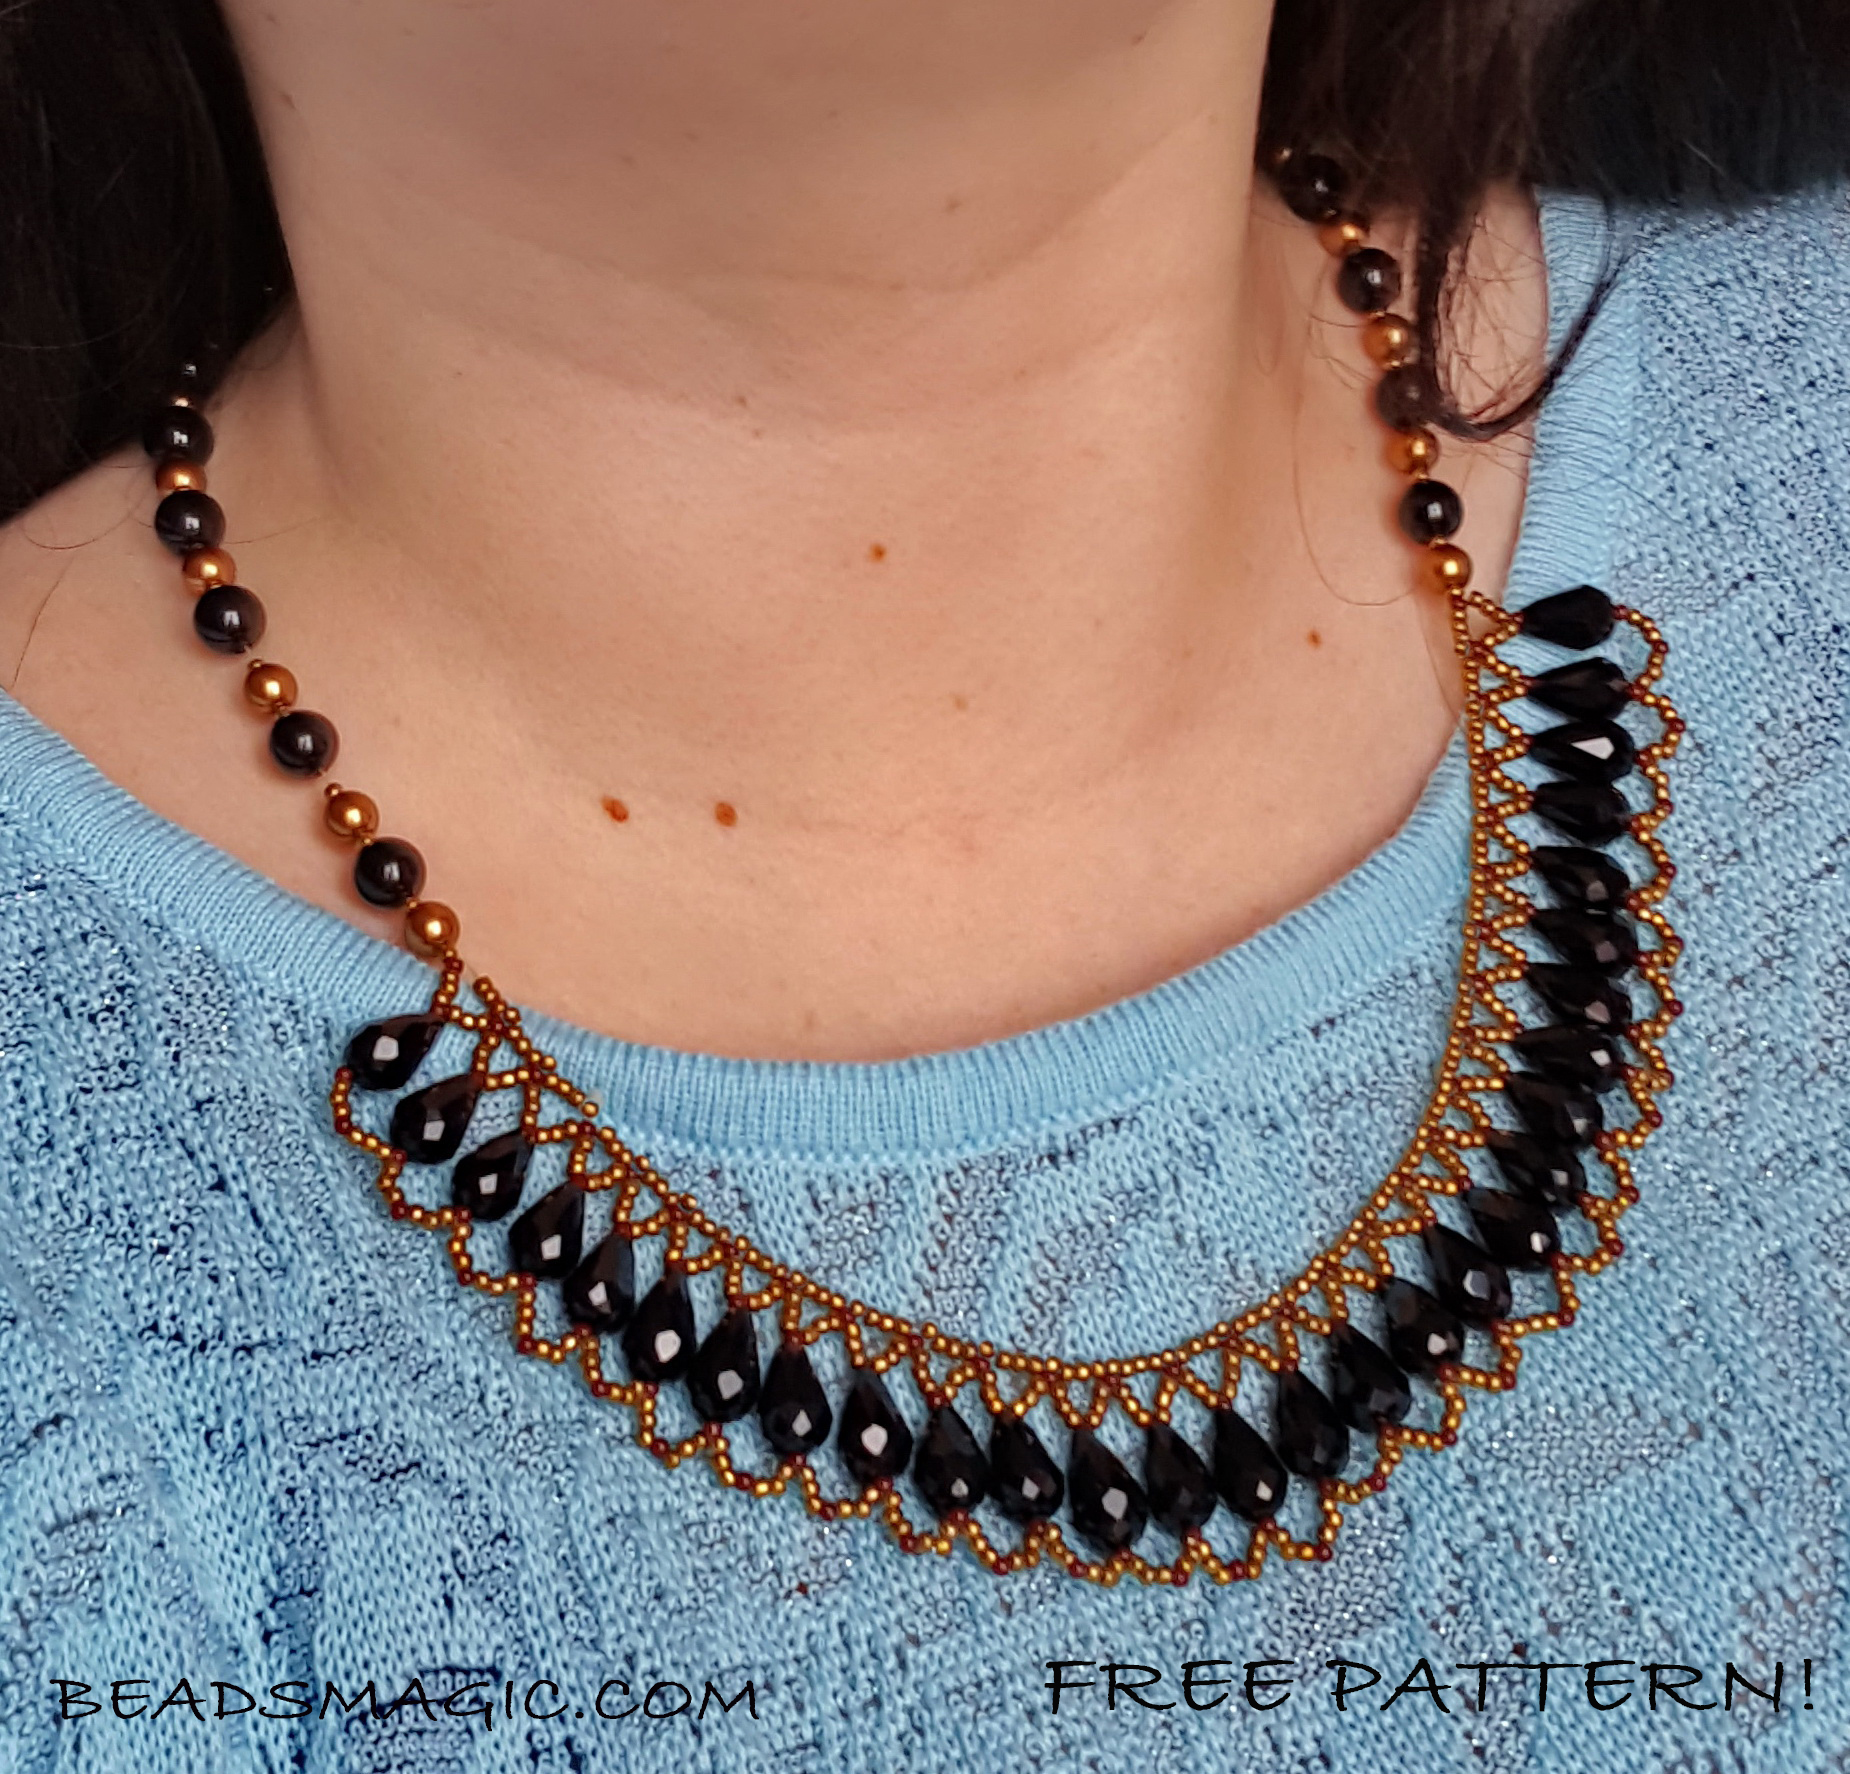 Free pattern for beaded necklace Gwen | Beads Magic